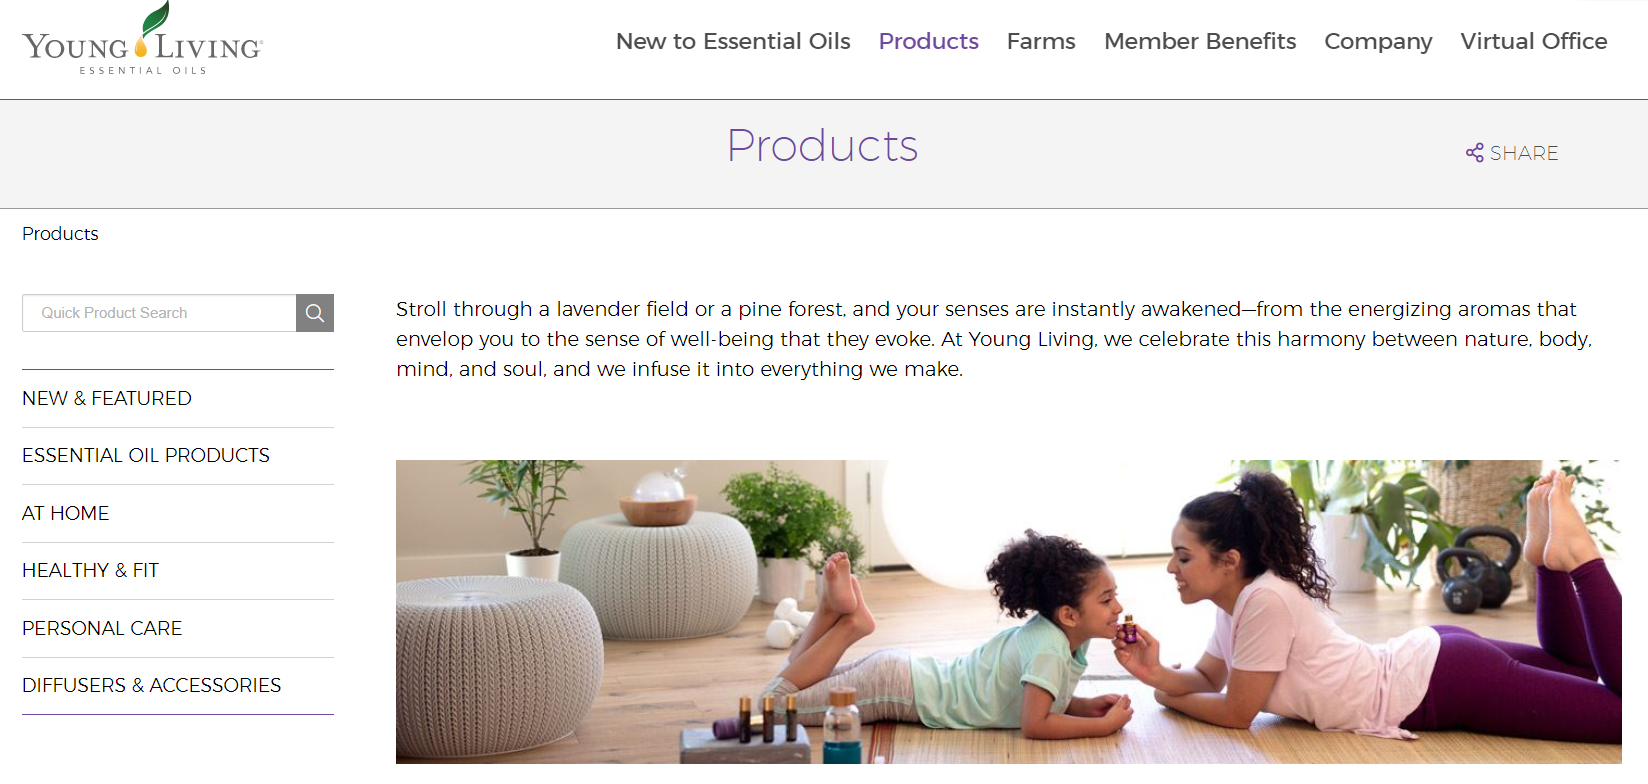 Is Young Living Essential Oil a Pyramid Scam?